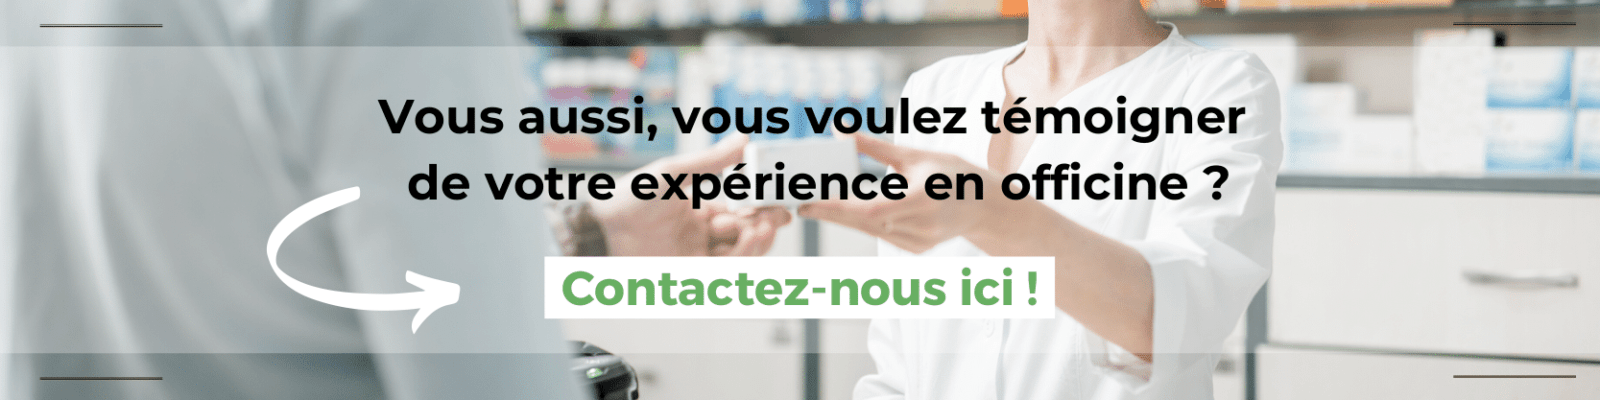 contact témoignage officine etudiant